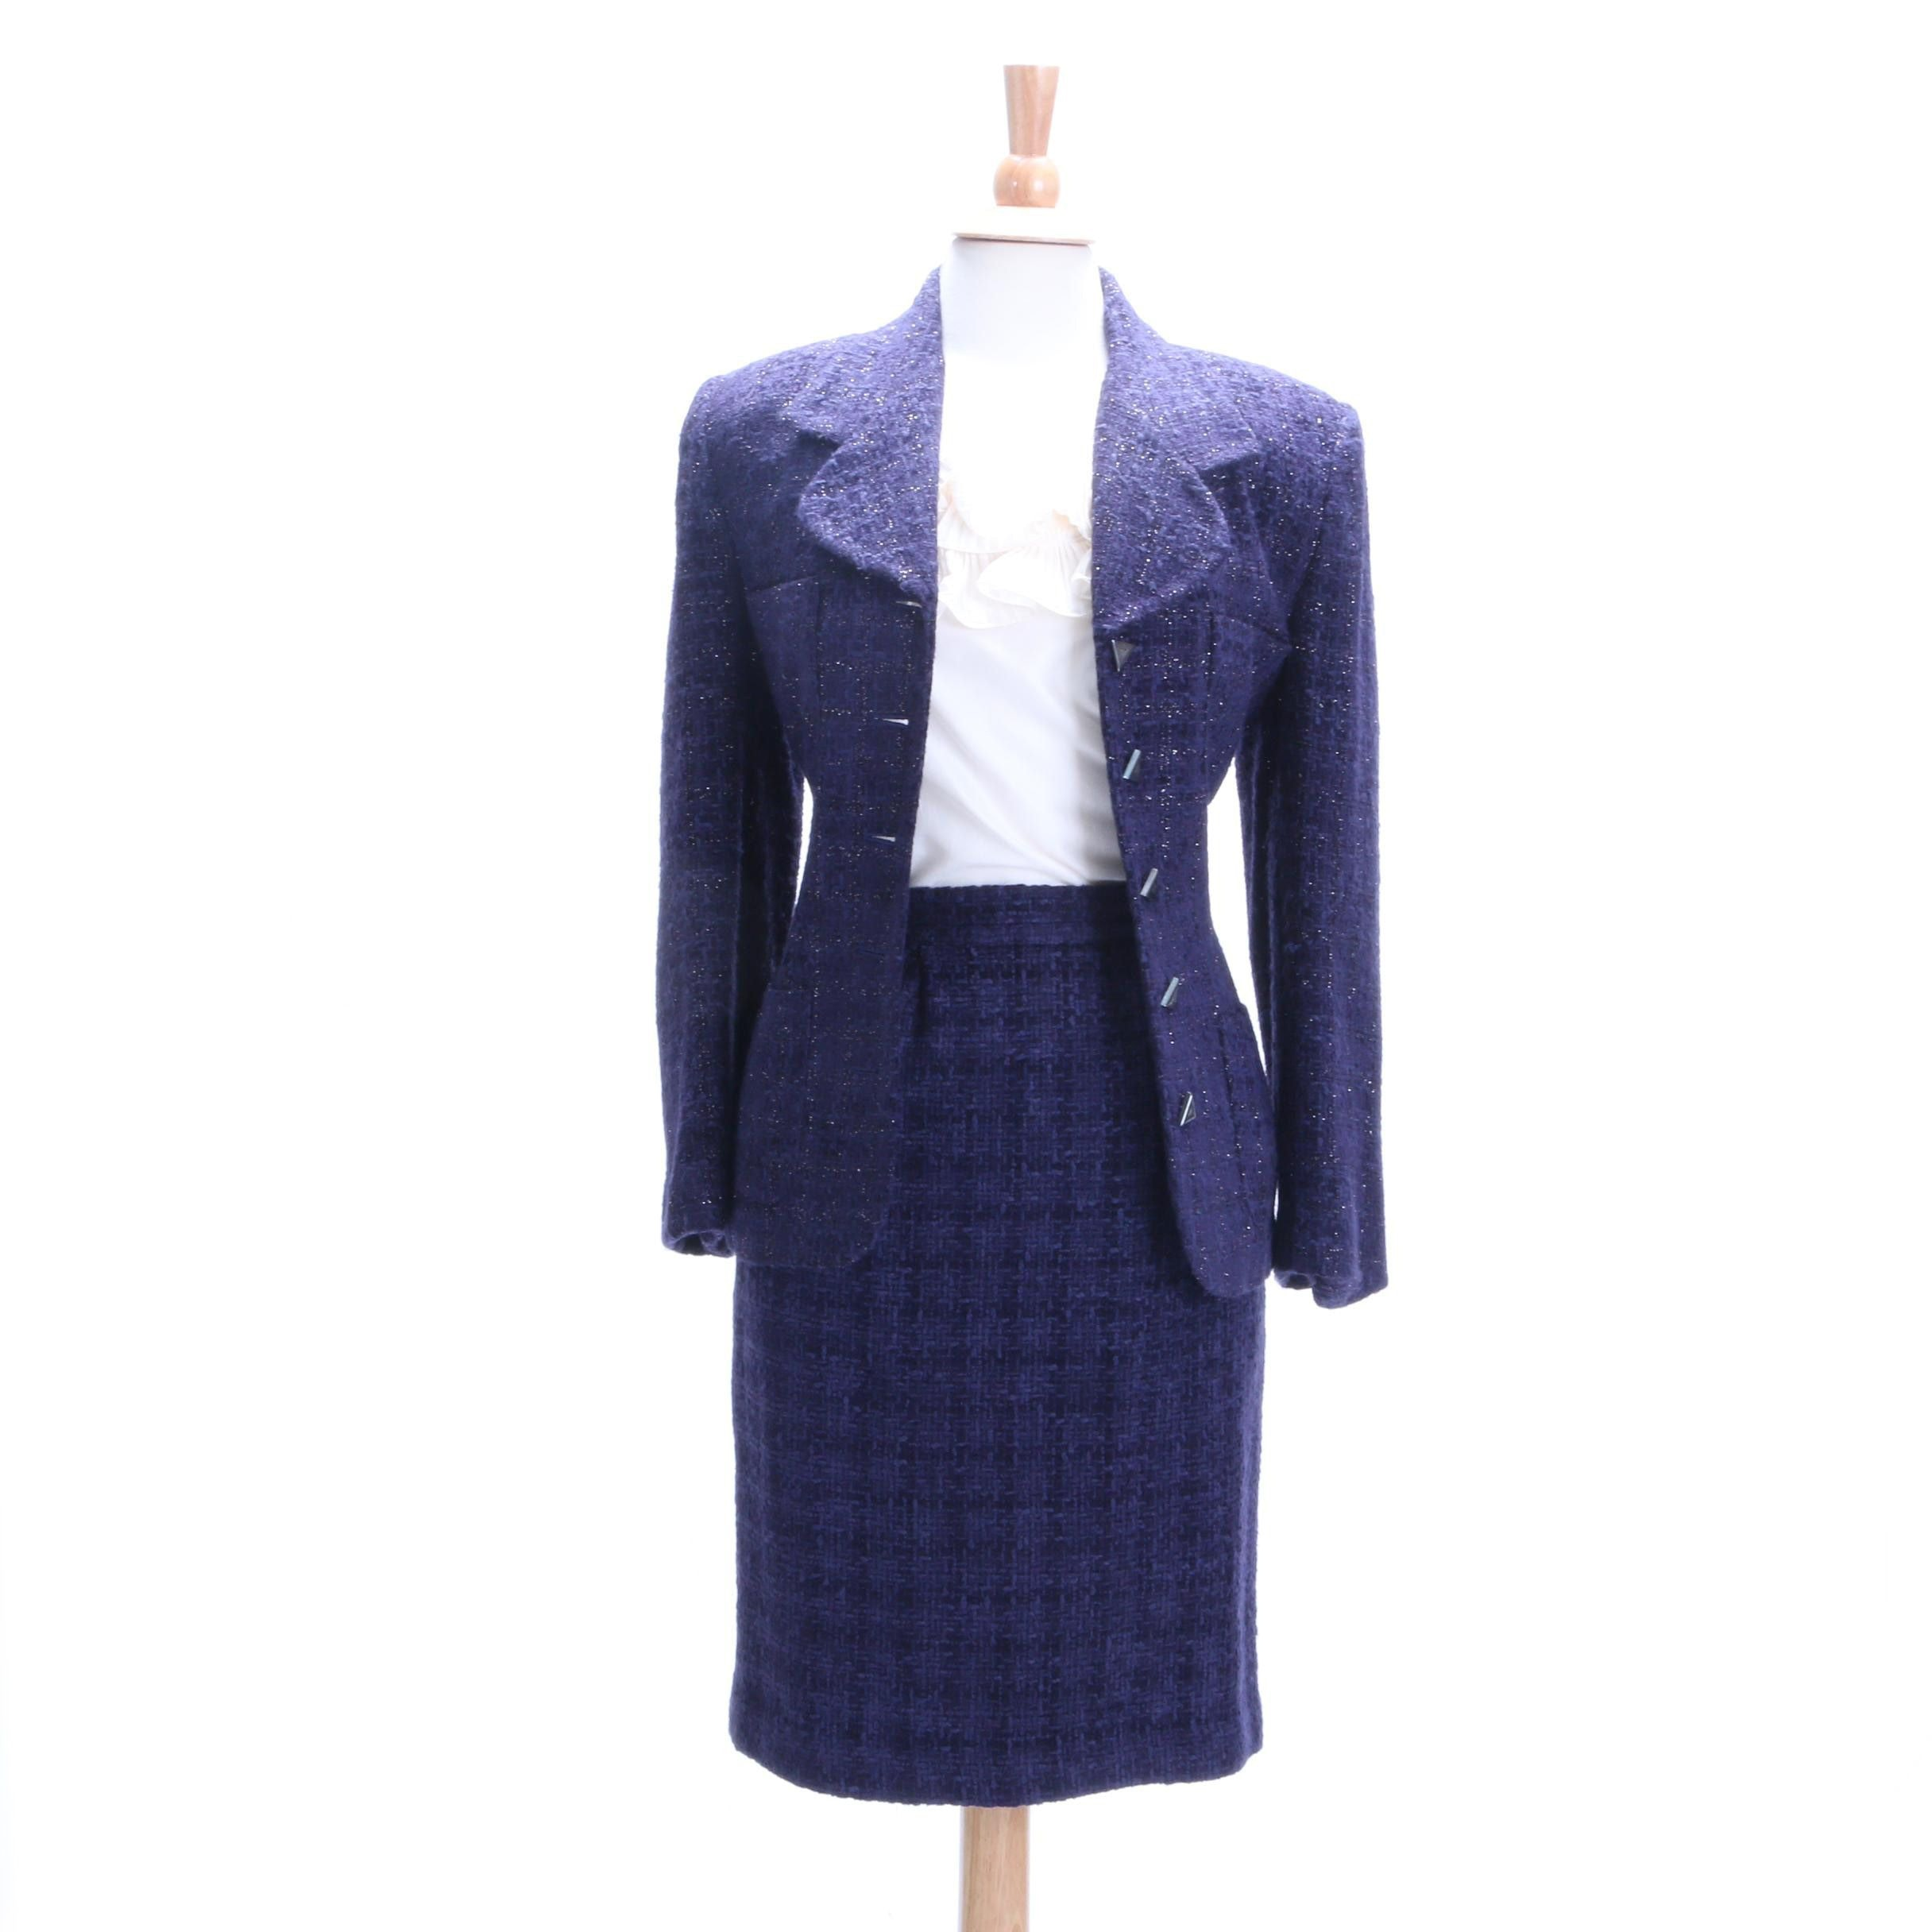 Executive Collection Bouclé Skirt Suit and Oscar de la Renta Ruffled Silk Blouse